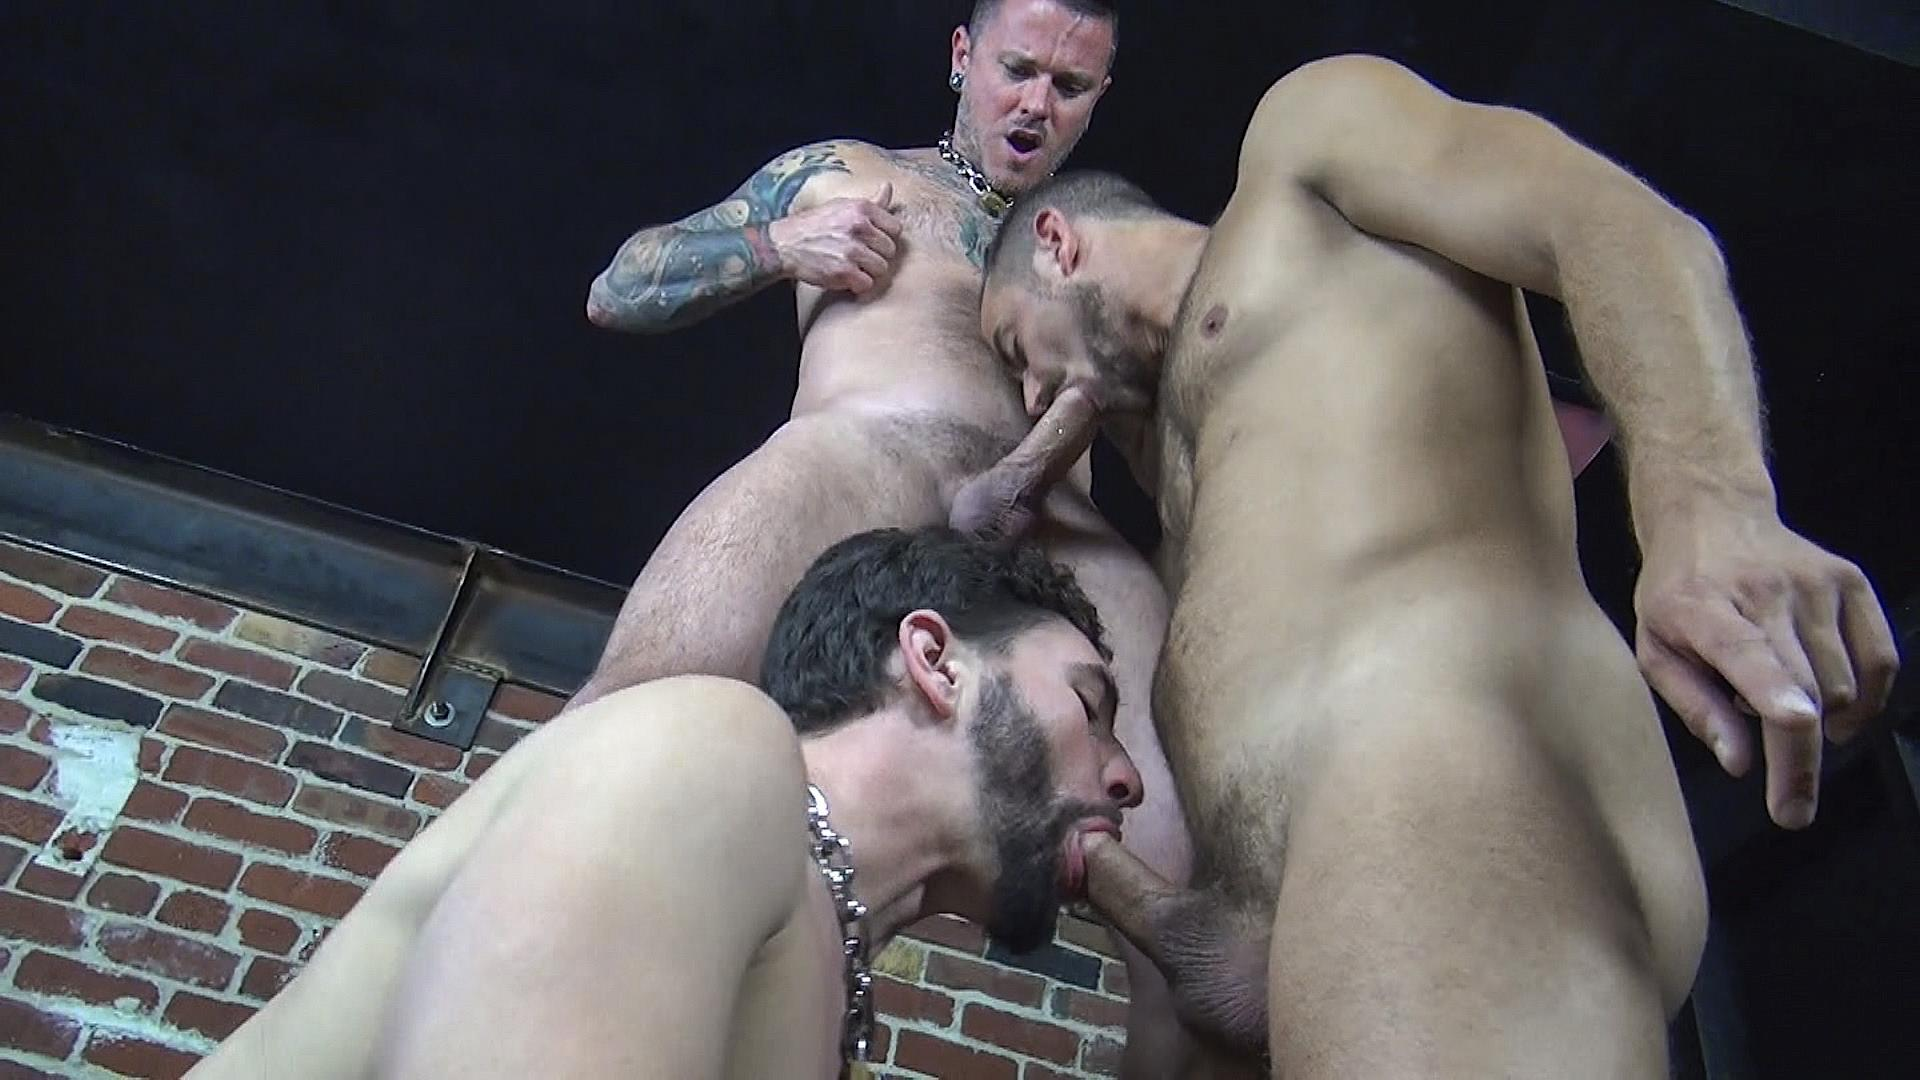 Raw-Fuck-Club-Max-Cameron-and-Jackson-Fillmore-and-Leon-Fox-Bareback-Double-Penetration-Amateur-Gay-Porn-10 Getting Double Penetrated Bareback By A Big Uncut Cock